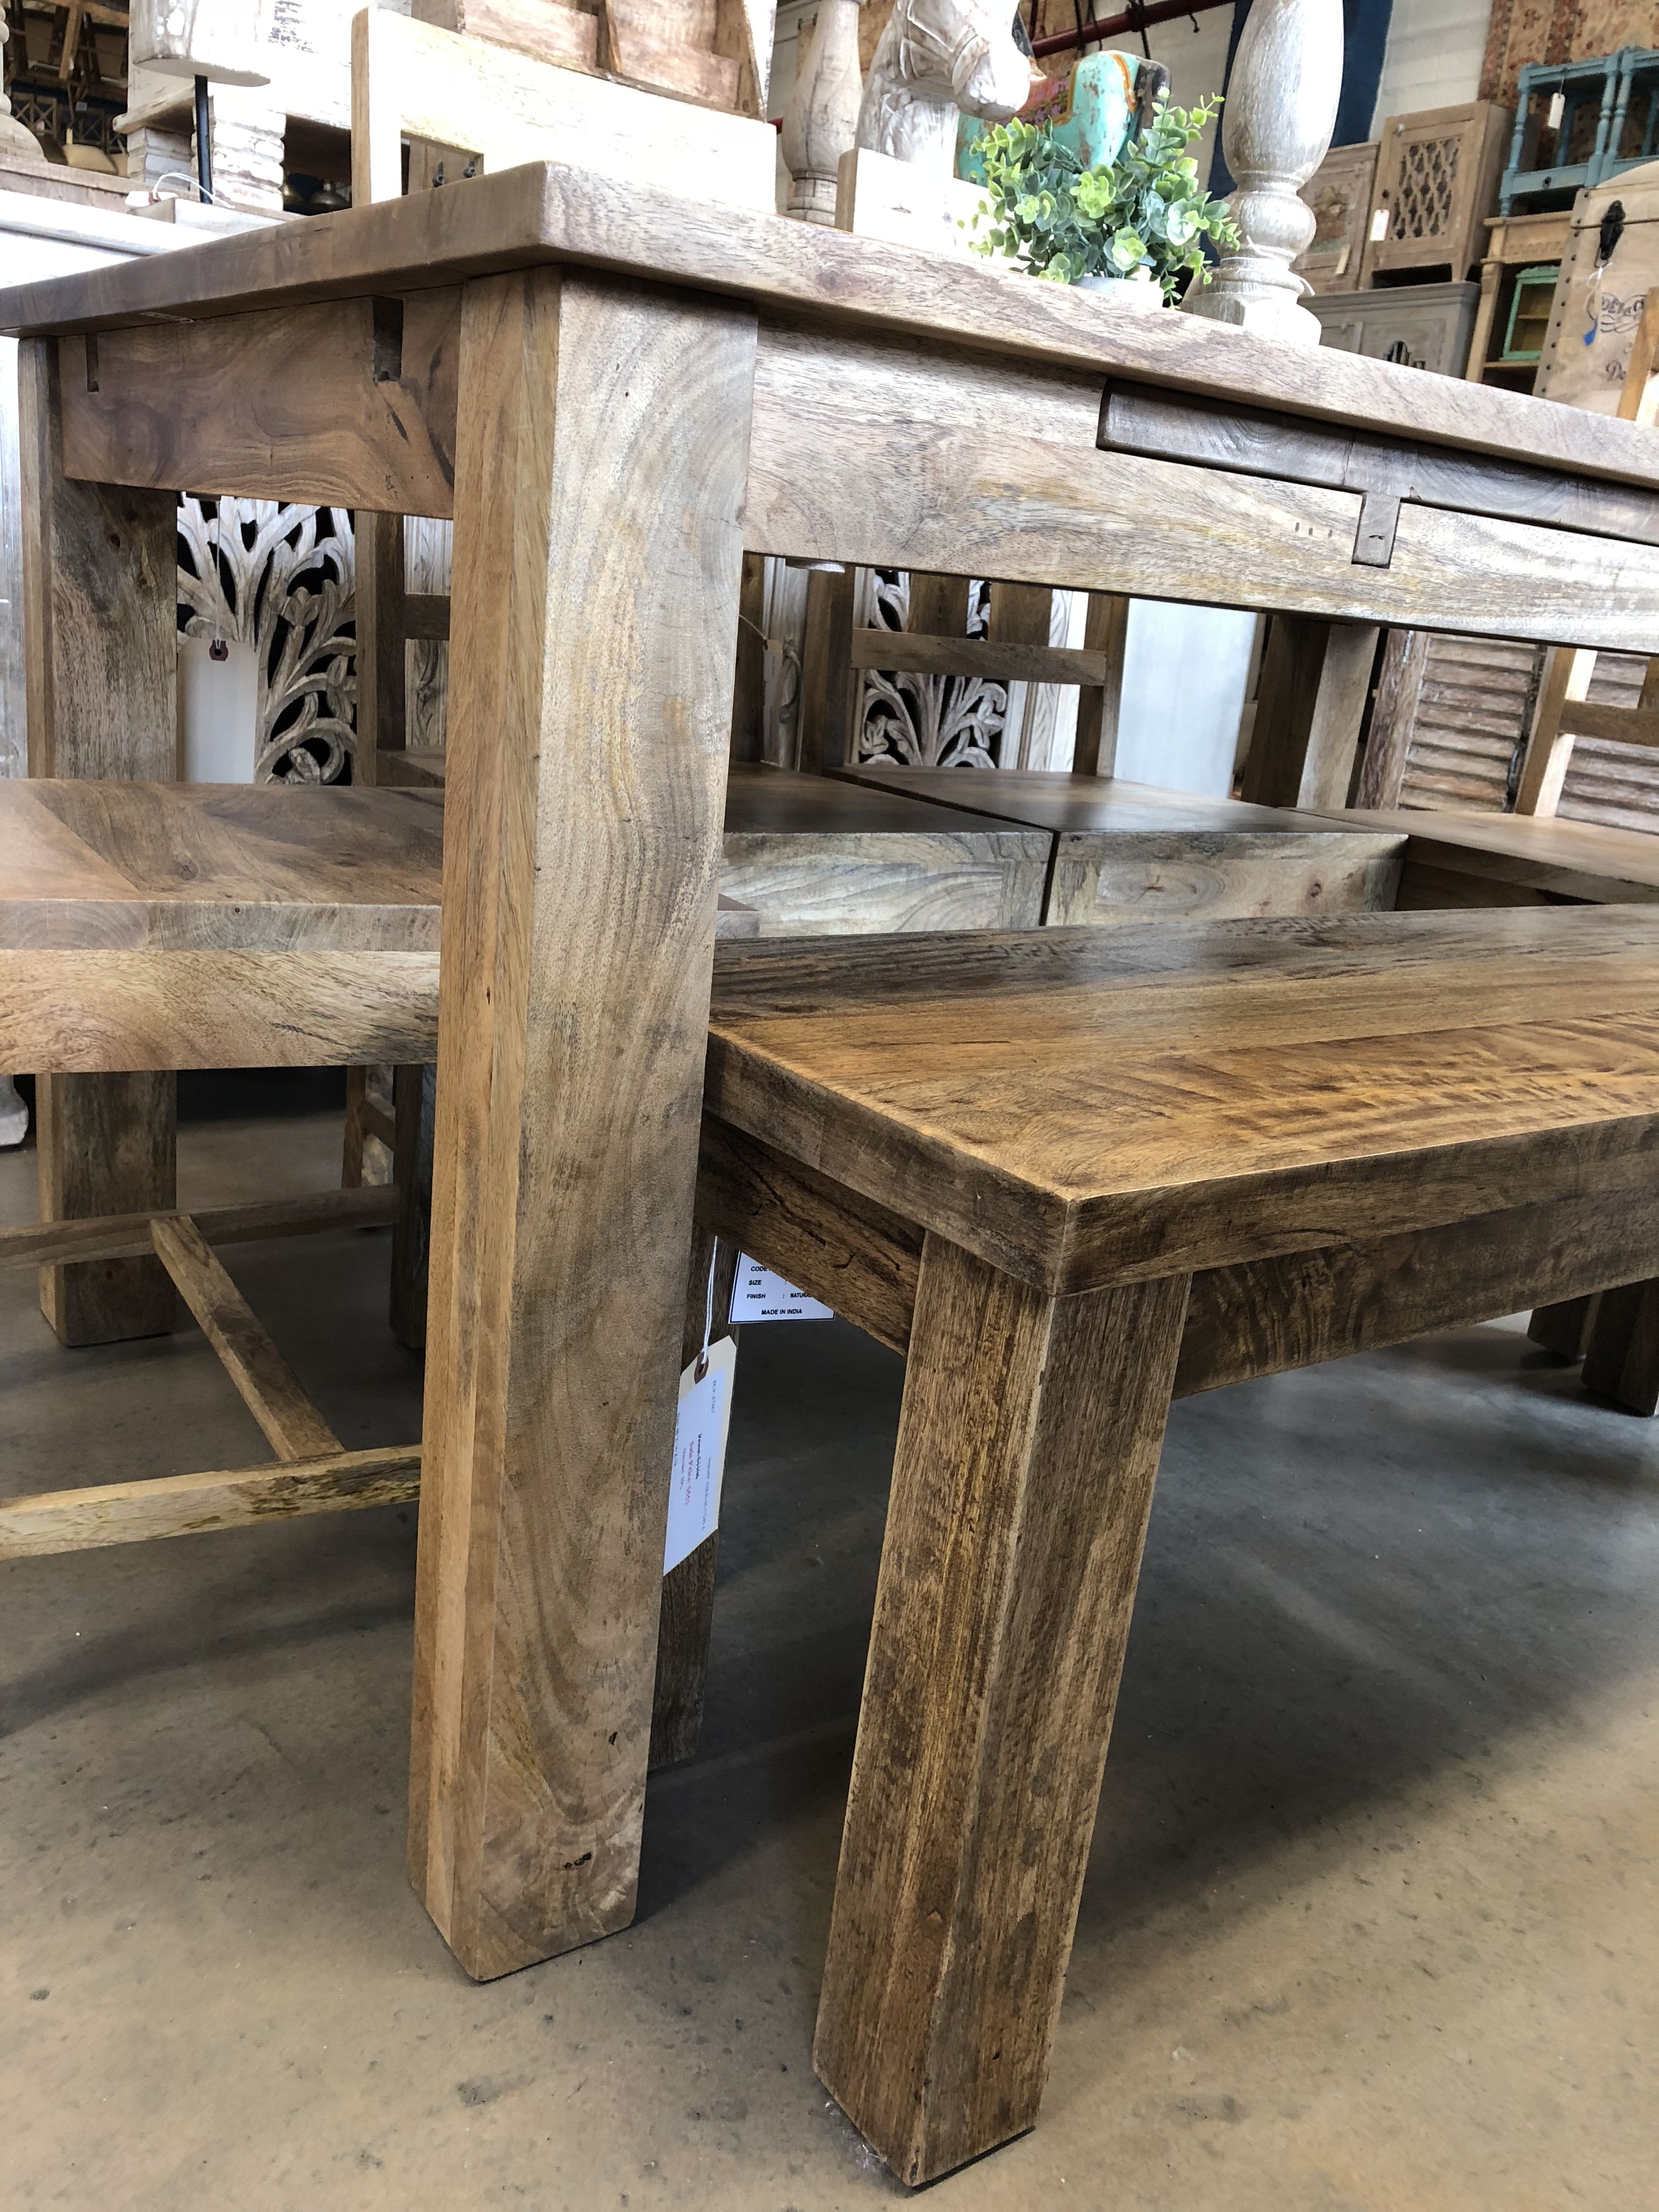 Solid Reclaimed Organic Wood Tables Chairs Benches This Table Has Self Storing Leafs For Easy Extension Ready A Party Of 1 Or 10